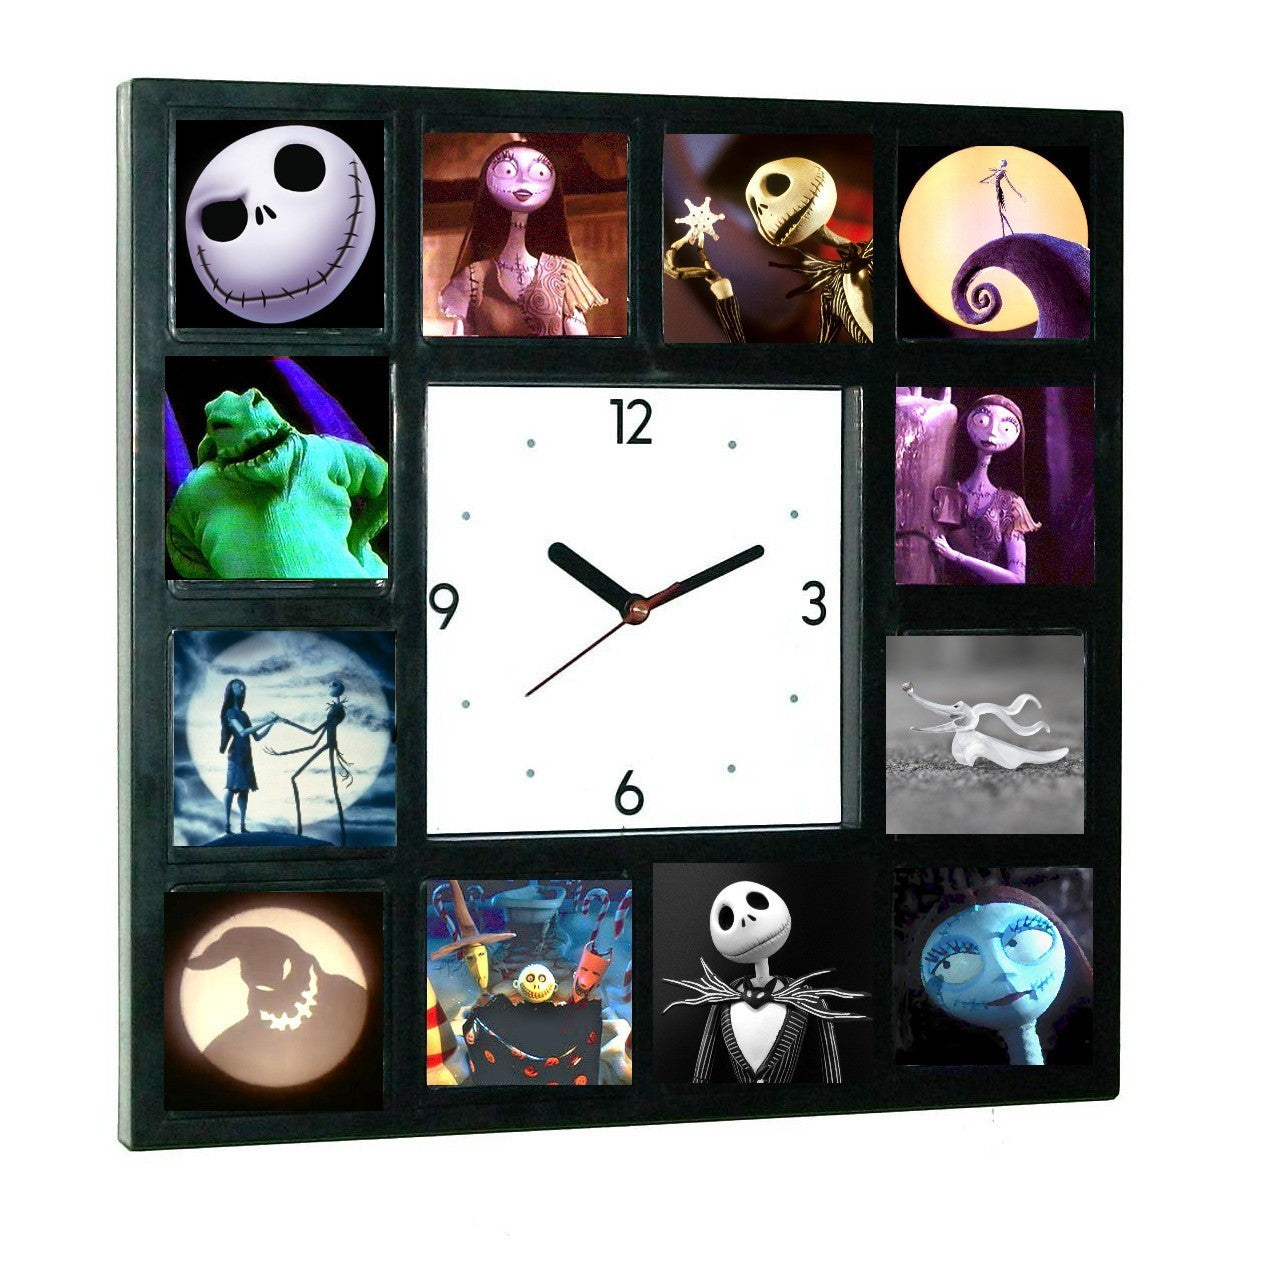 The Nightmare Before Christmas Glow In The Dark 12 Clock numbered LIMITED EDITION , Watches & Clocks - n/a, Final Score Products  - 1